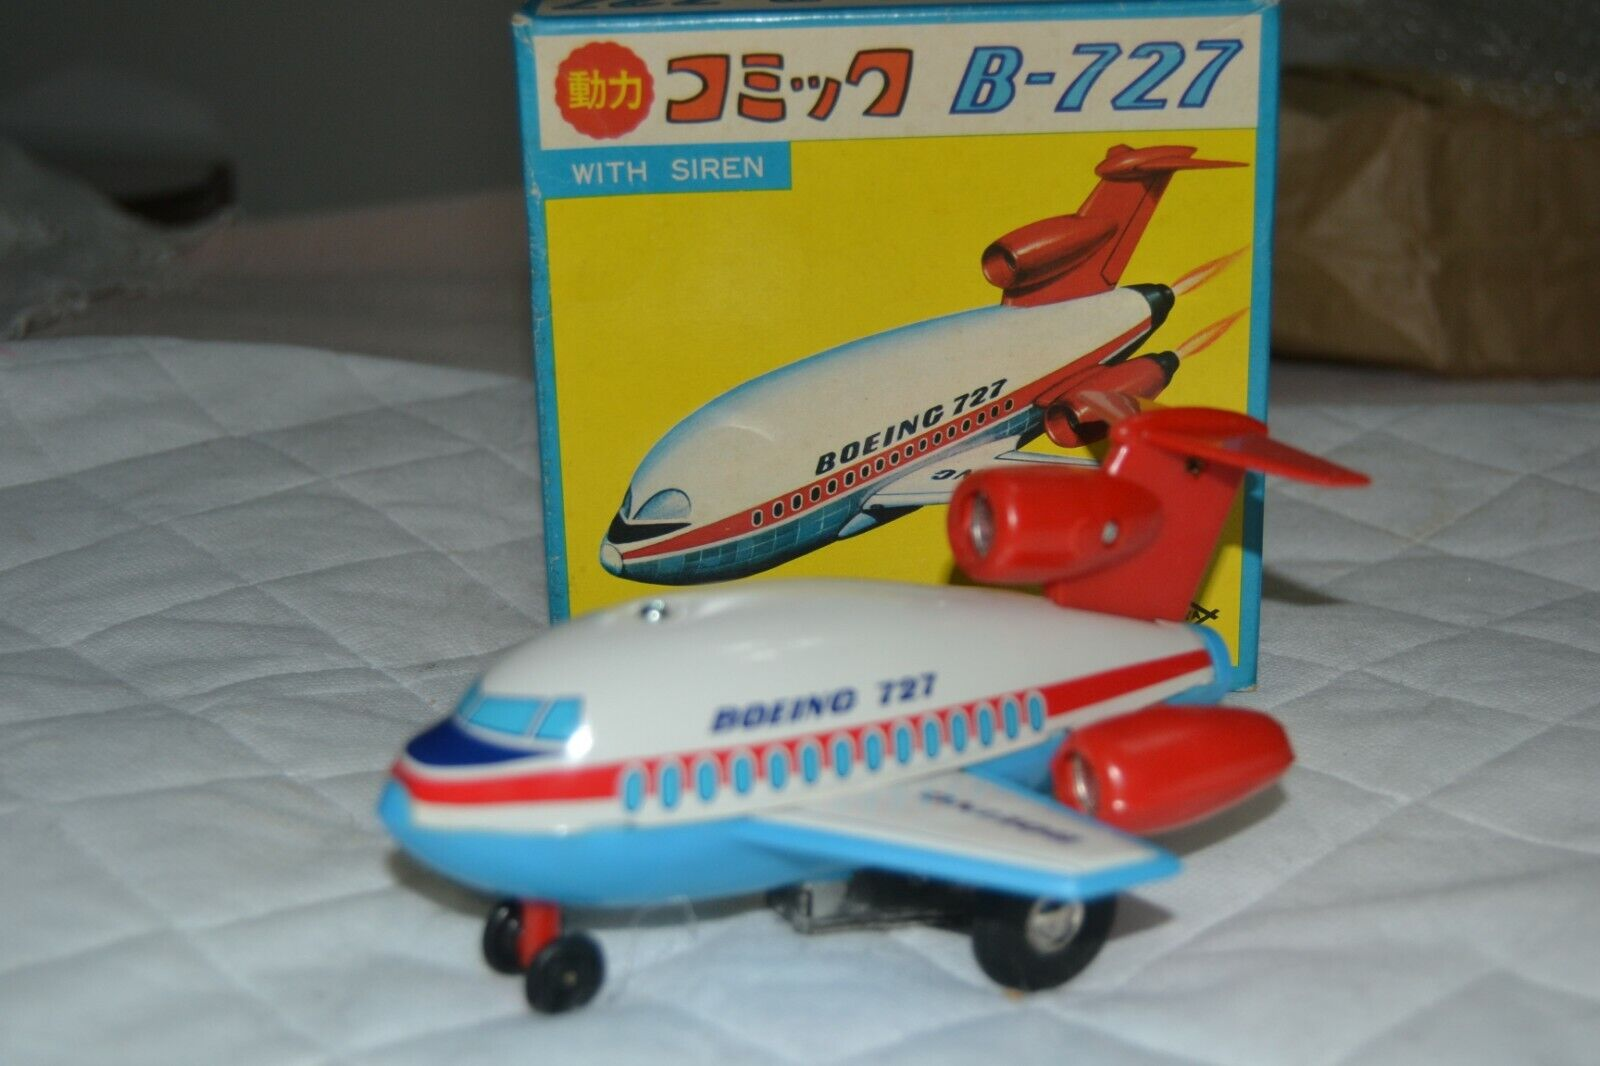 Tin toy Boeing B-727 Daiya Daiya Japan